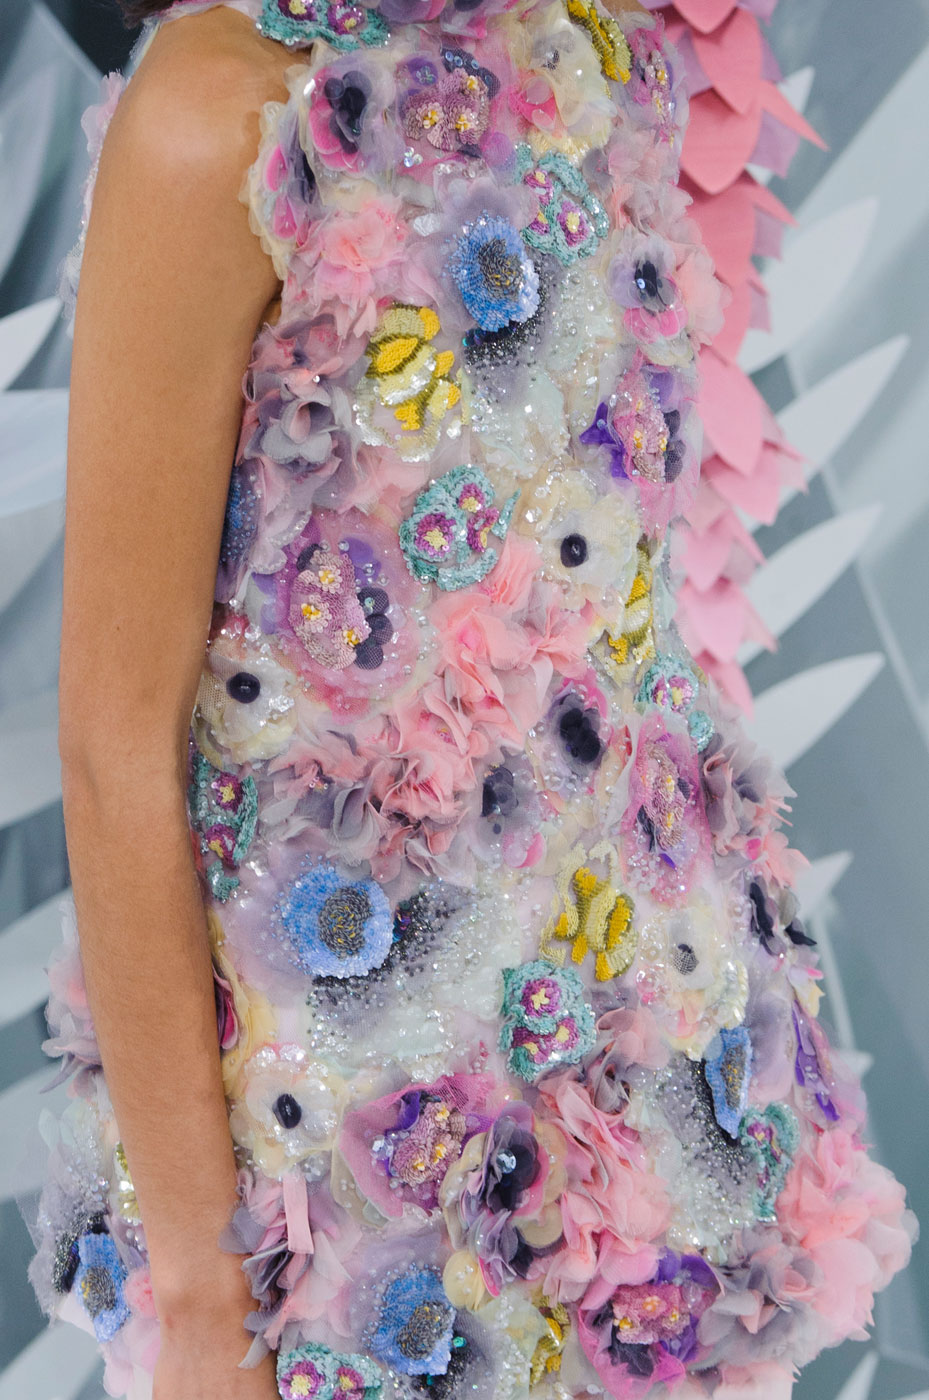 Chanel-fashion-runway-show-close-ups-haute-couture-paris-spring-summer-2015-the-impression-124